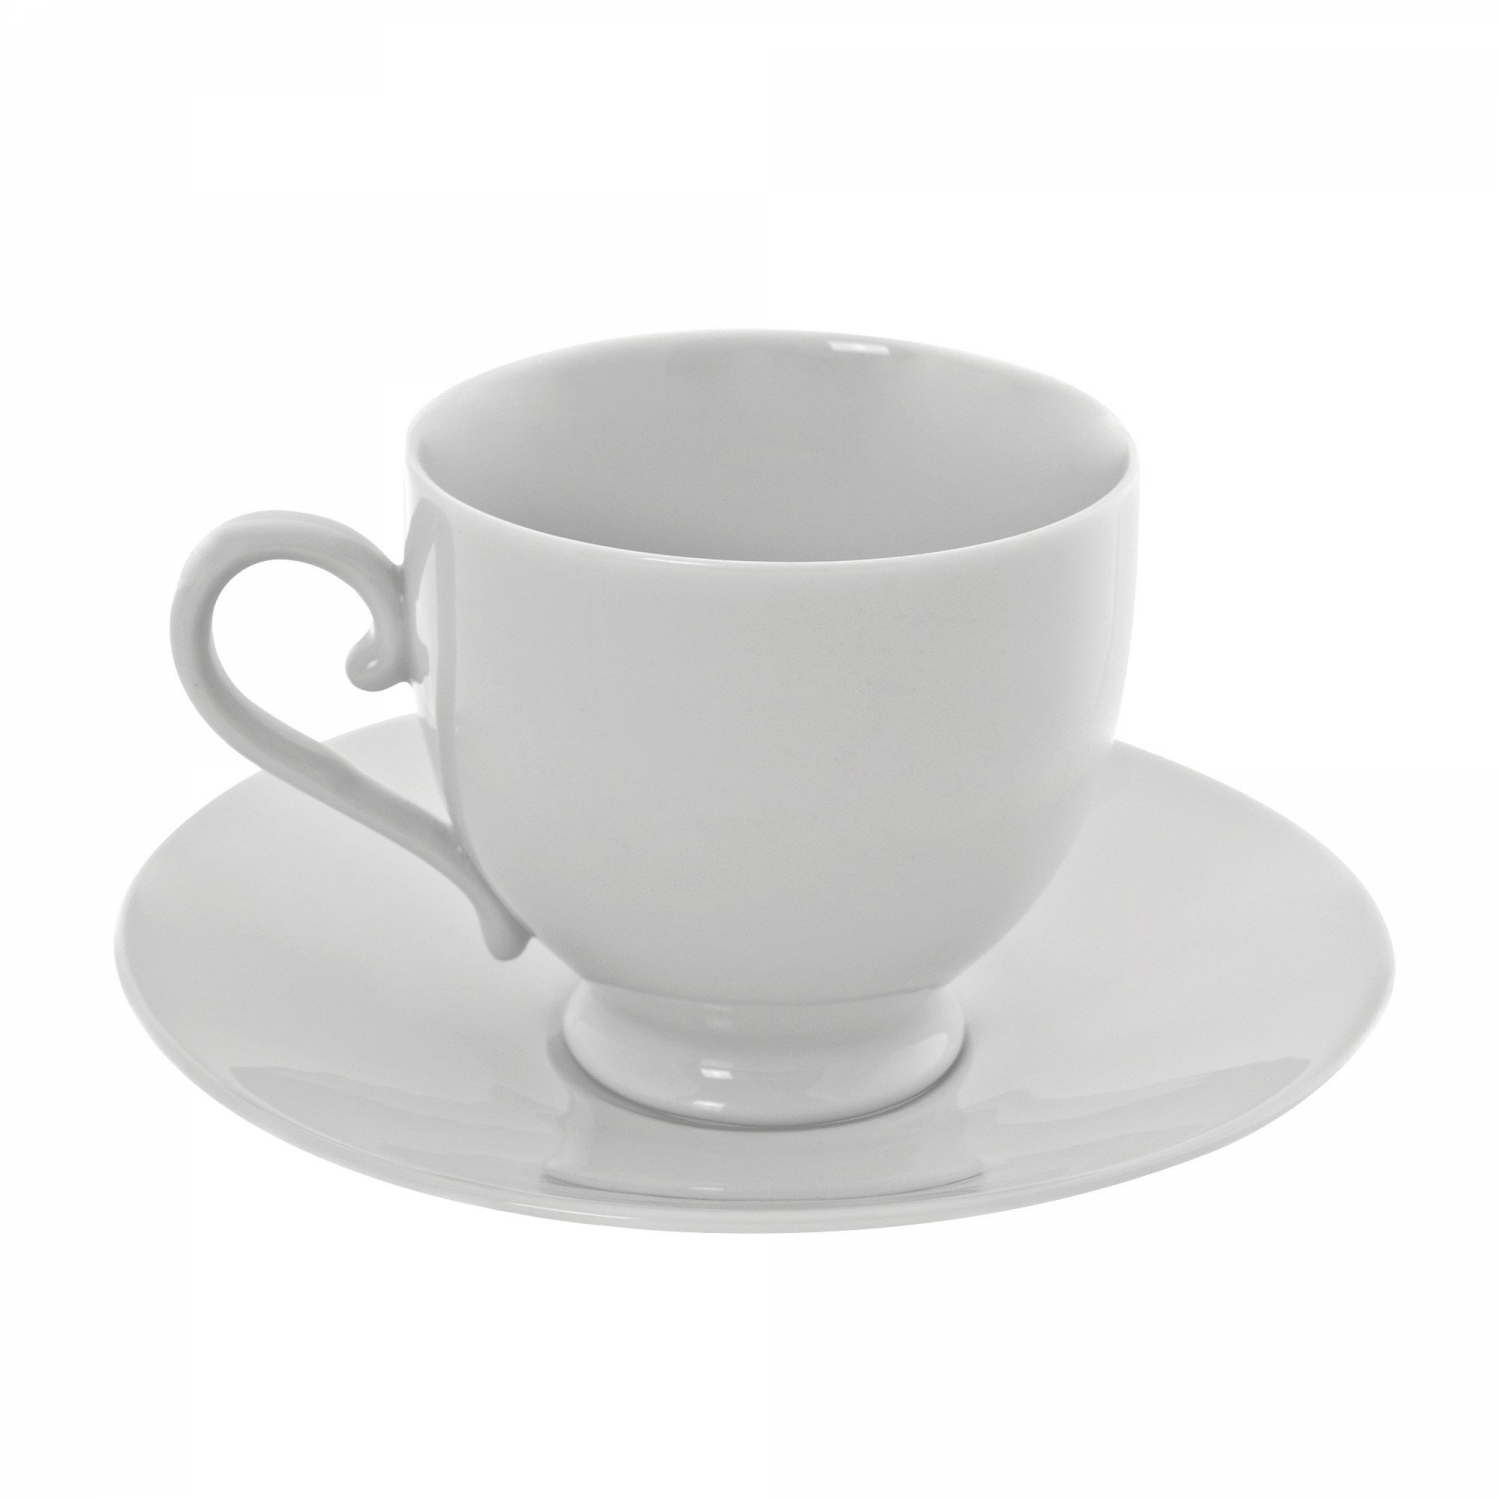 10 Strawberry Street RW0010 Royal White Cup and Saucer Set 8 oz.